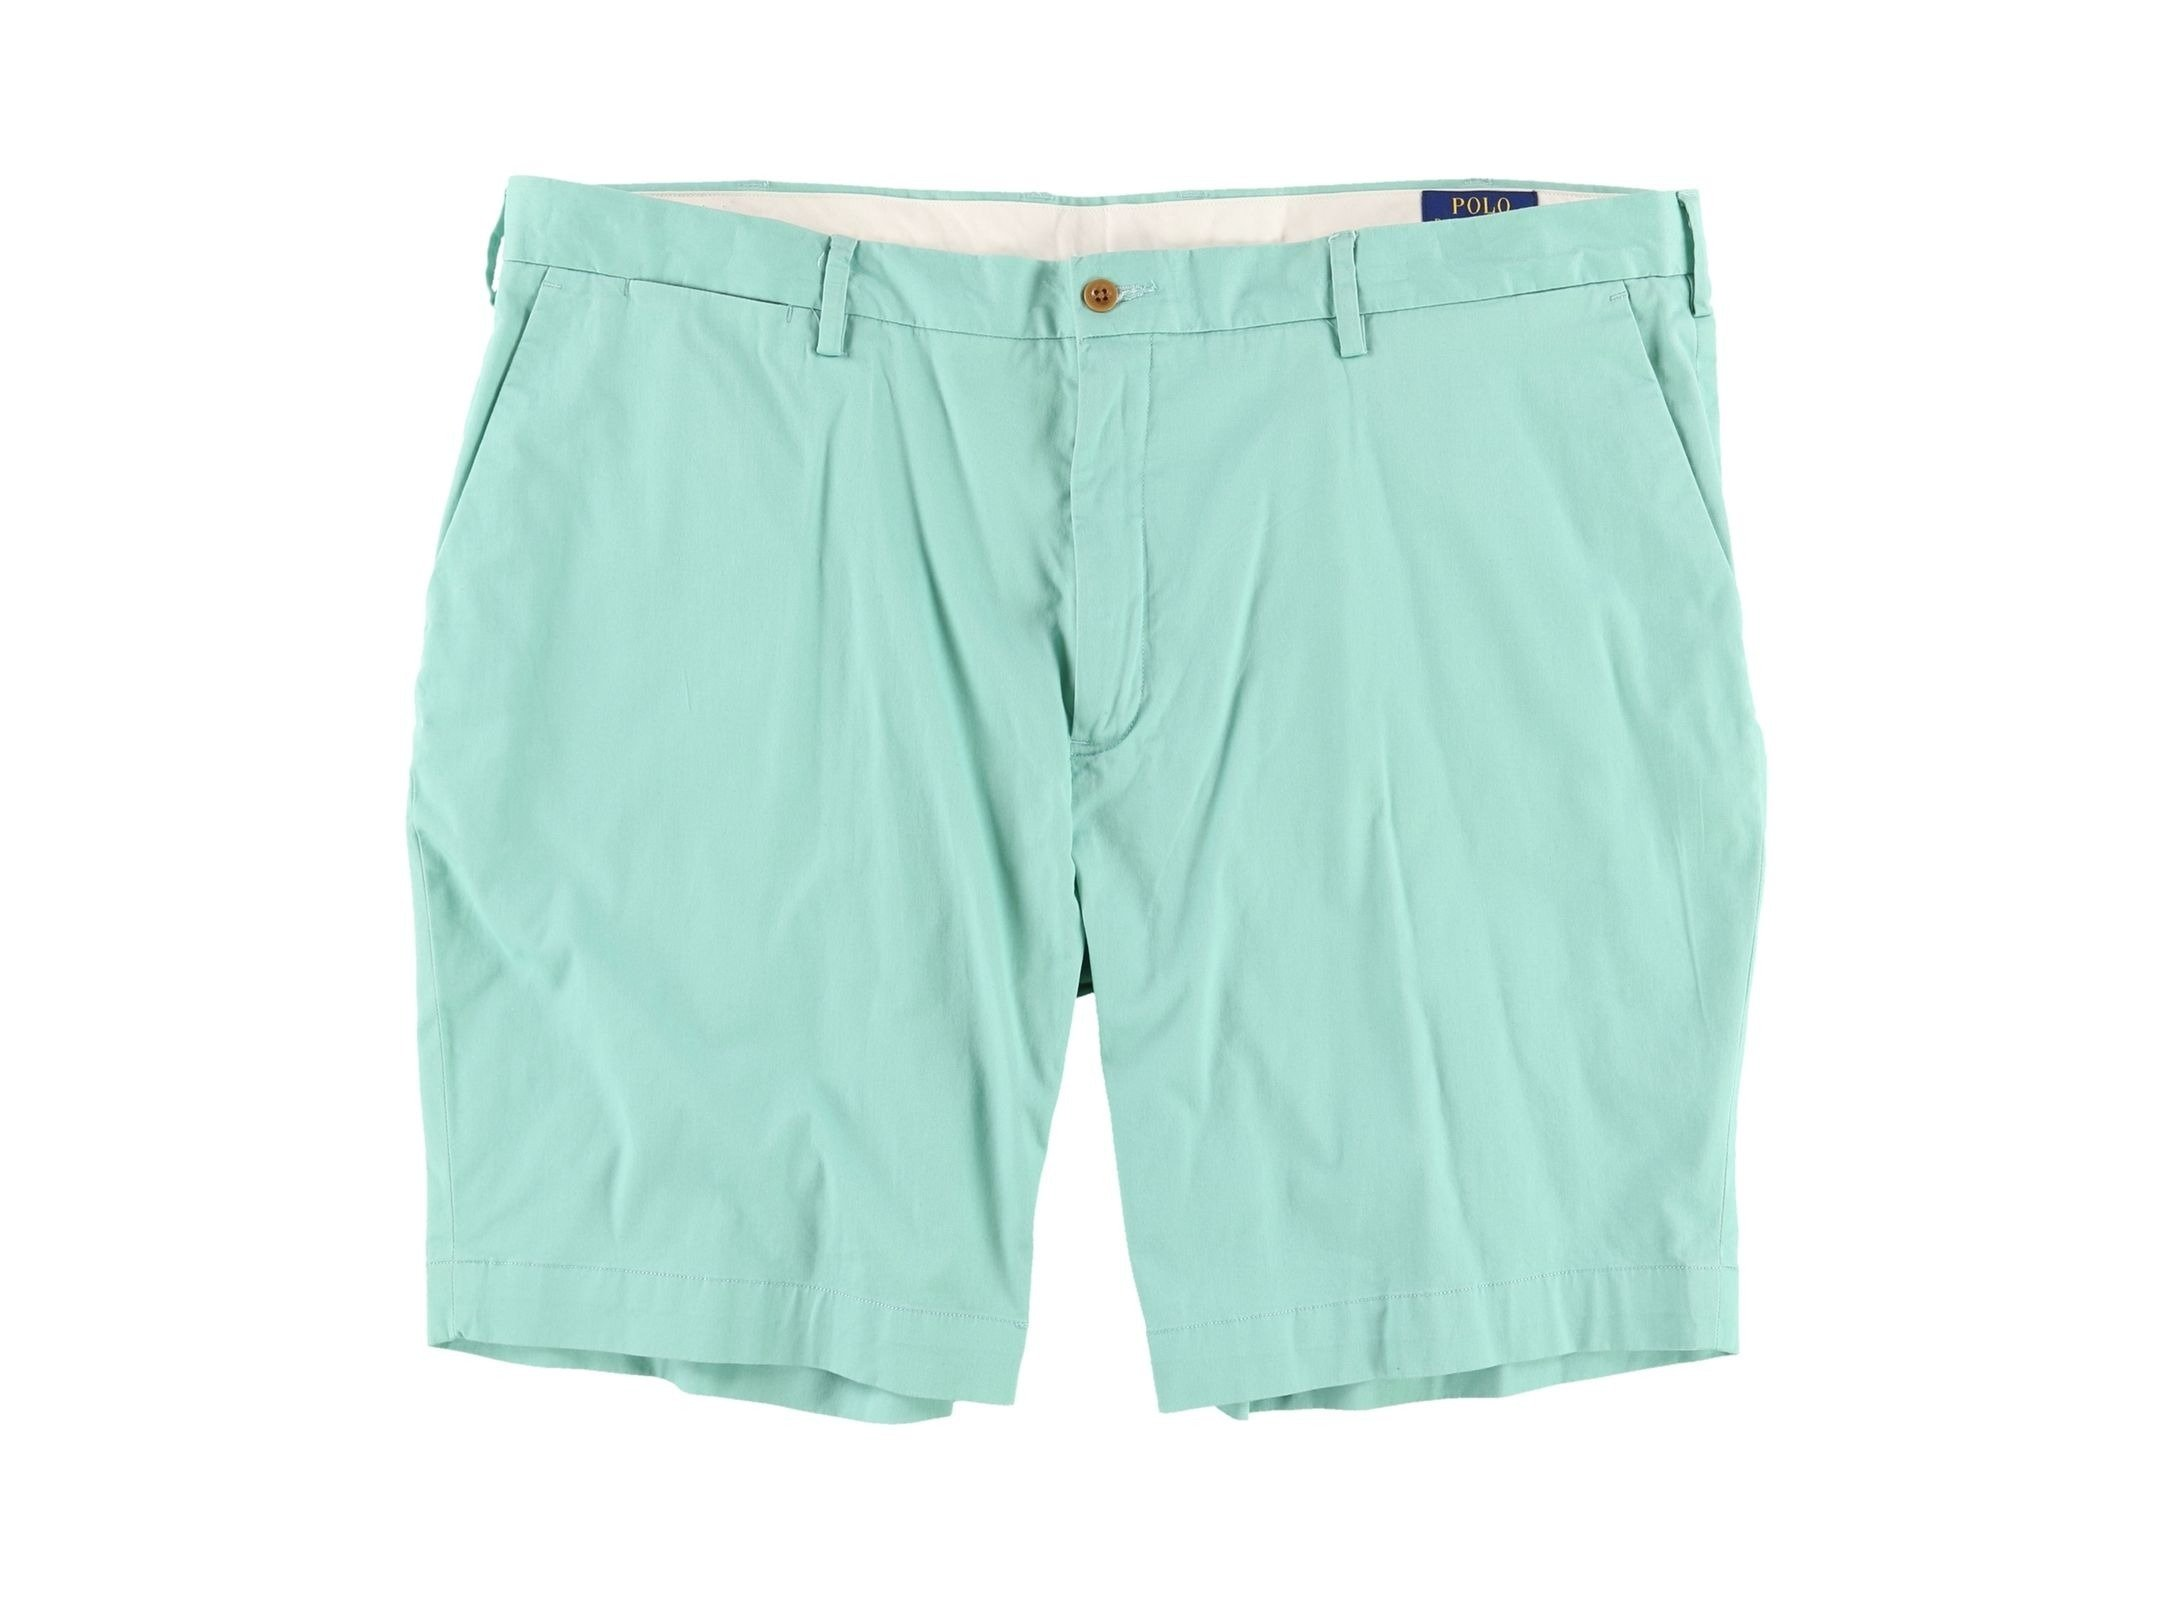 Polo Ralph Lauren Mens Classic-Fit Flat Front Casual Shorts Green 40